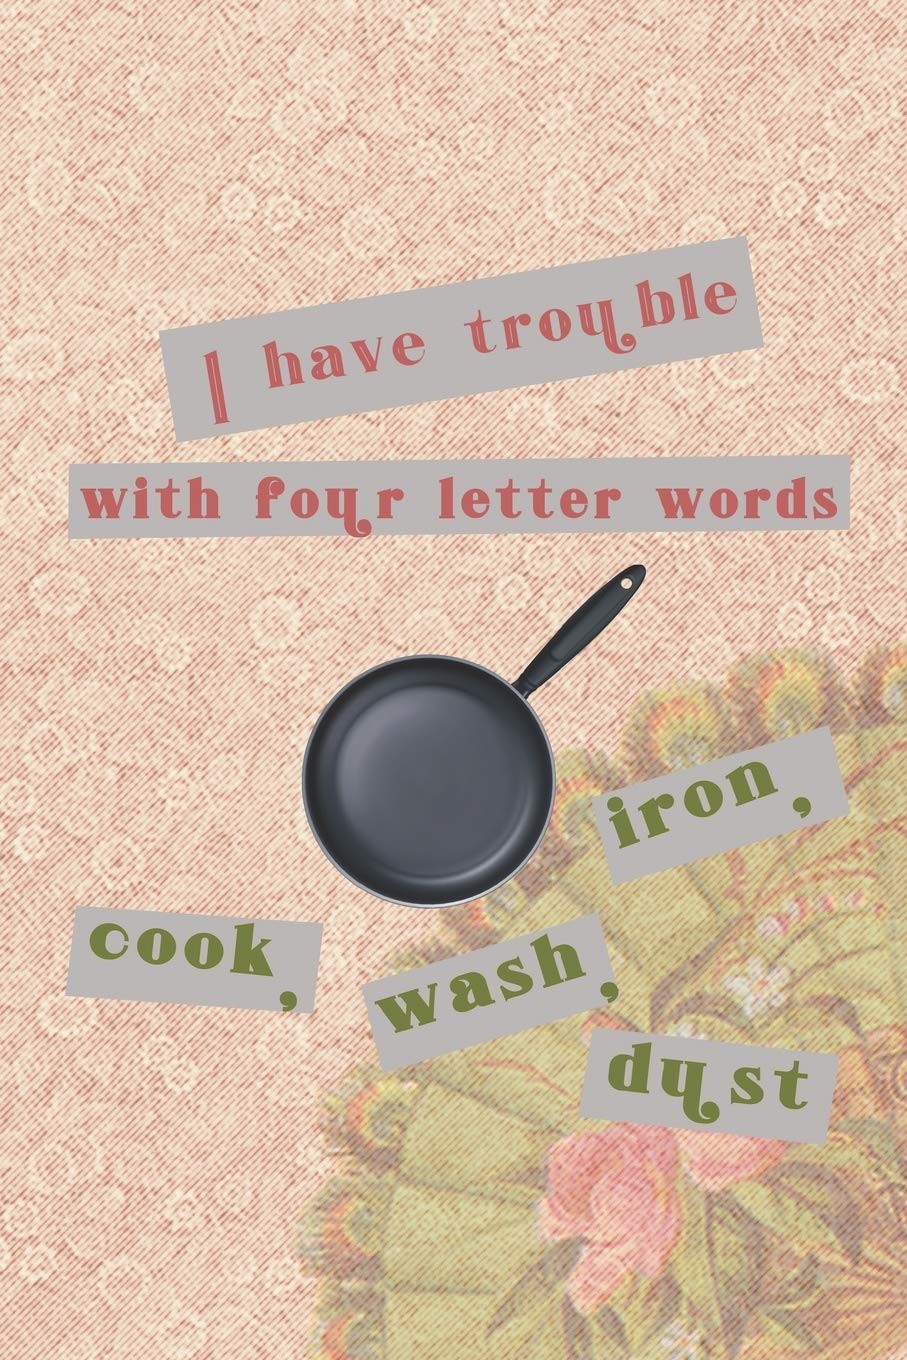 I Have Trouble With Four Letter Words Cook, Wash, Iron, Dust ...